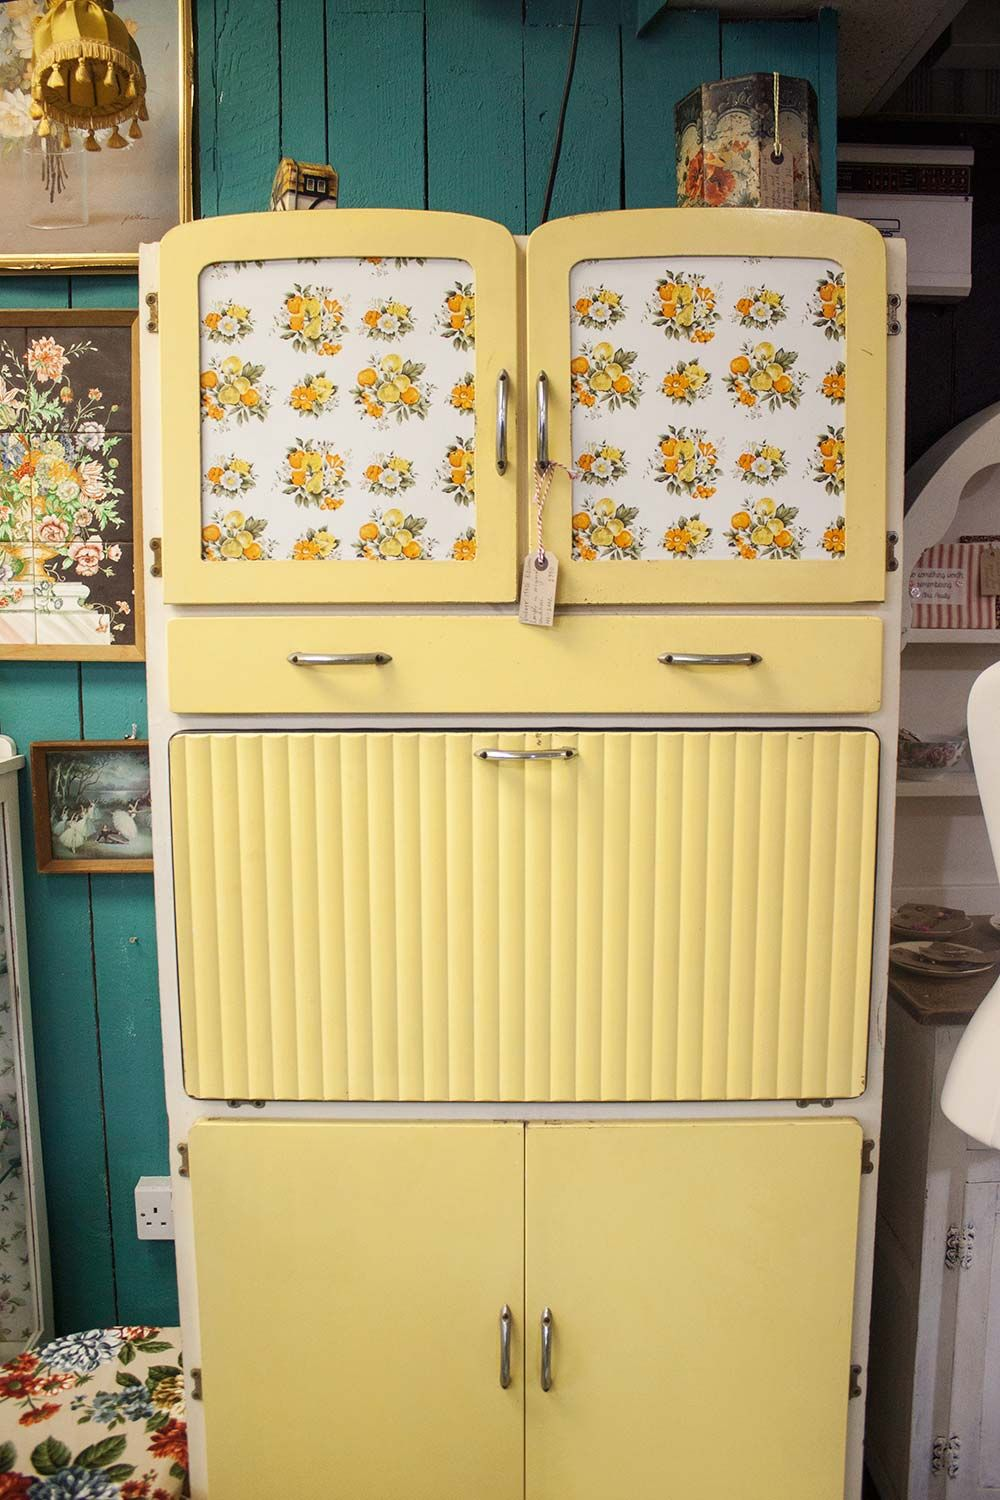 Vintage Pale Yellow Kitchen Larder Cupboard We Had One When I Was A Child Pull Down Shelf Table To Make A Piece And Jam Retro Vintage Kitchen Kitche